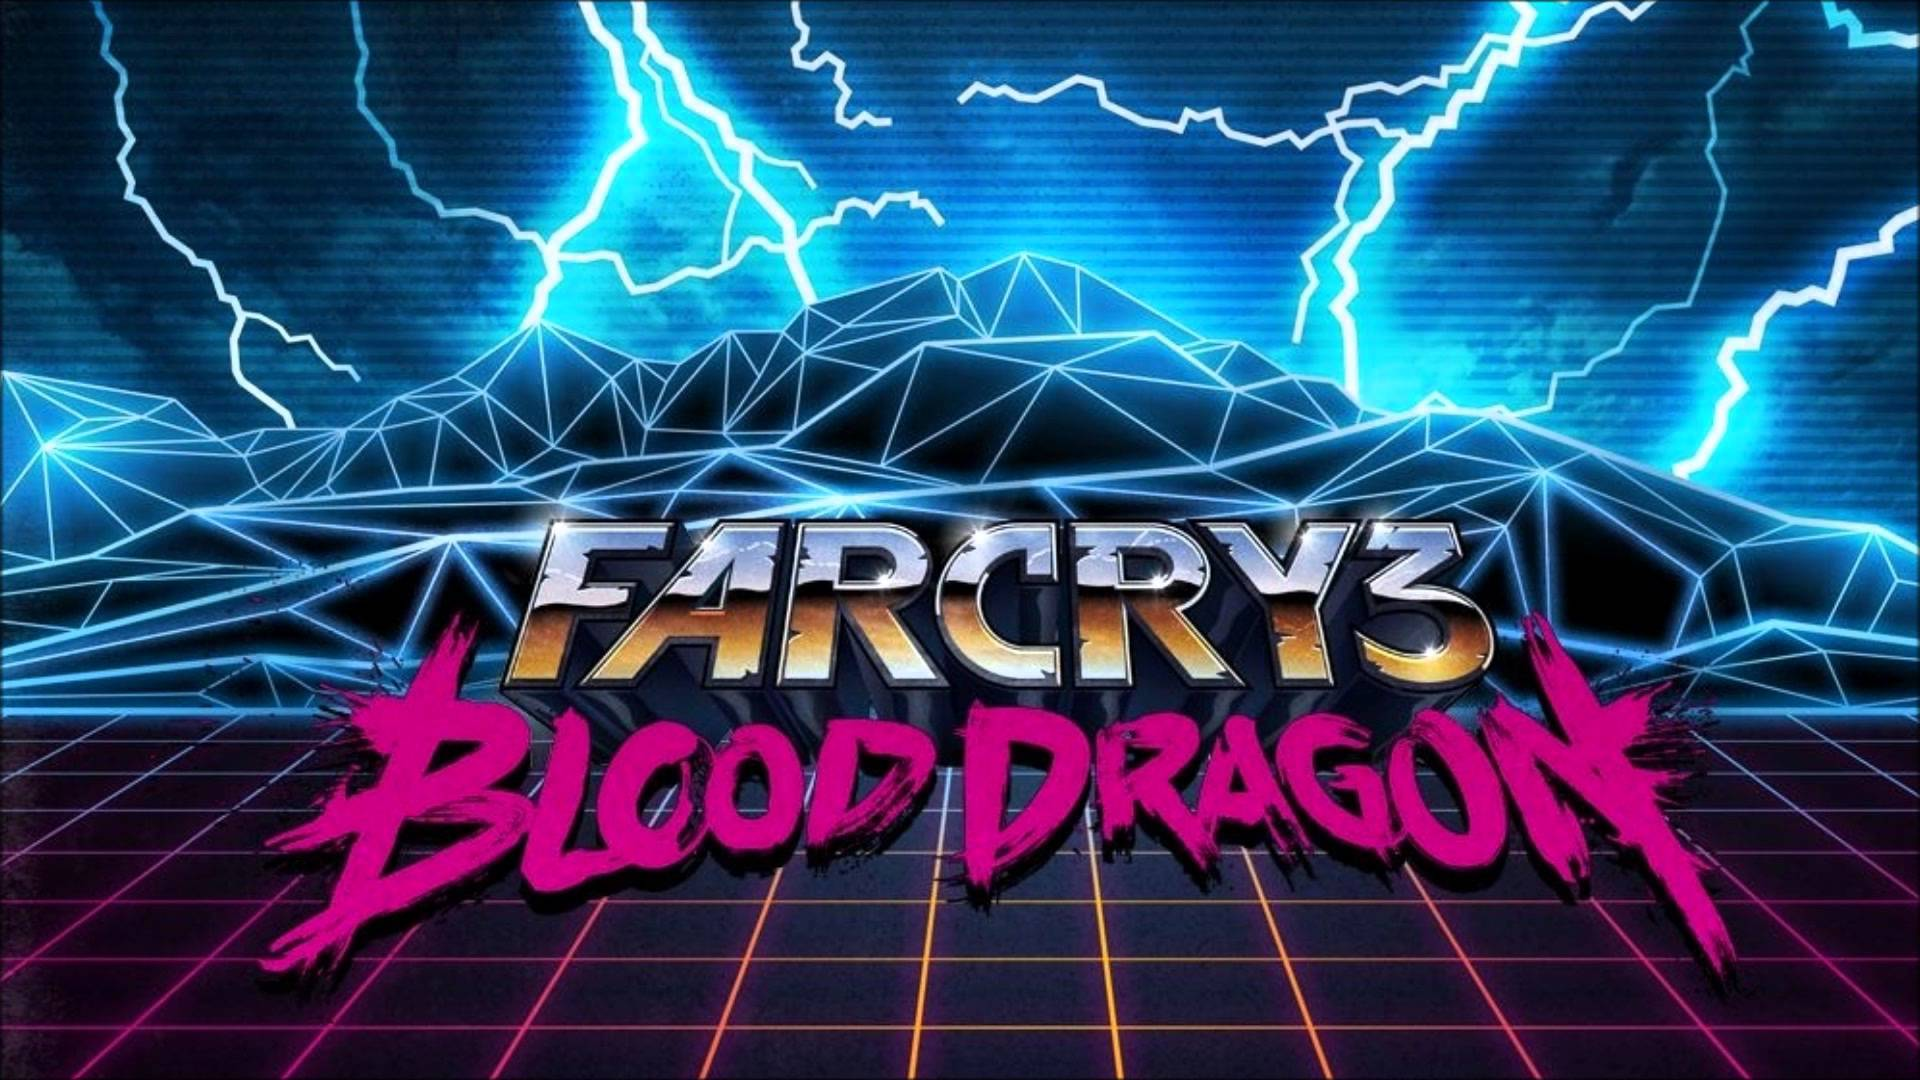 Photo of Ubisoft oferă Far Cry 3 Blood Dragon gratuit luna aceasta